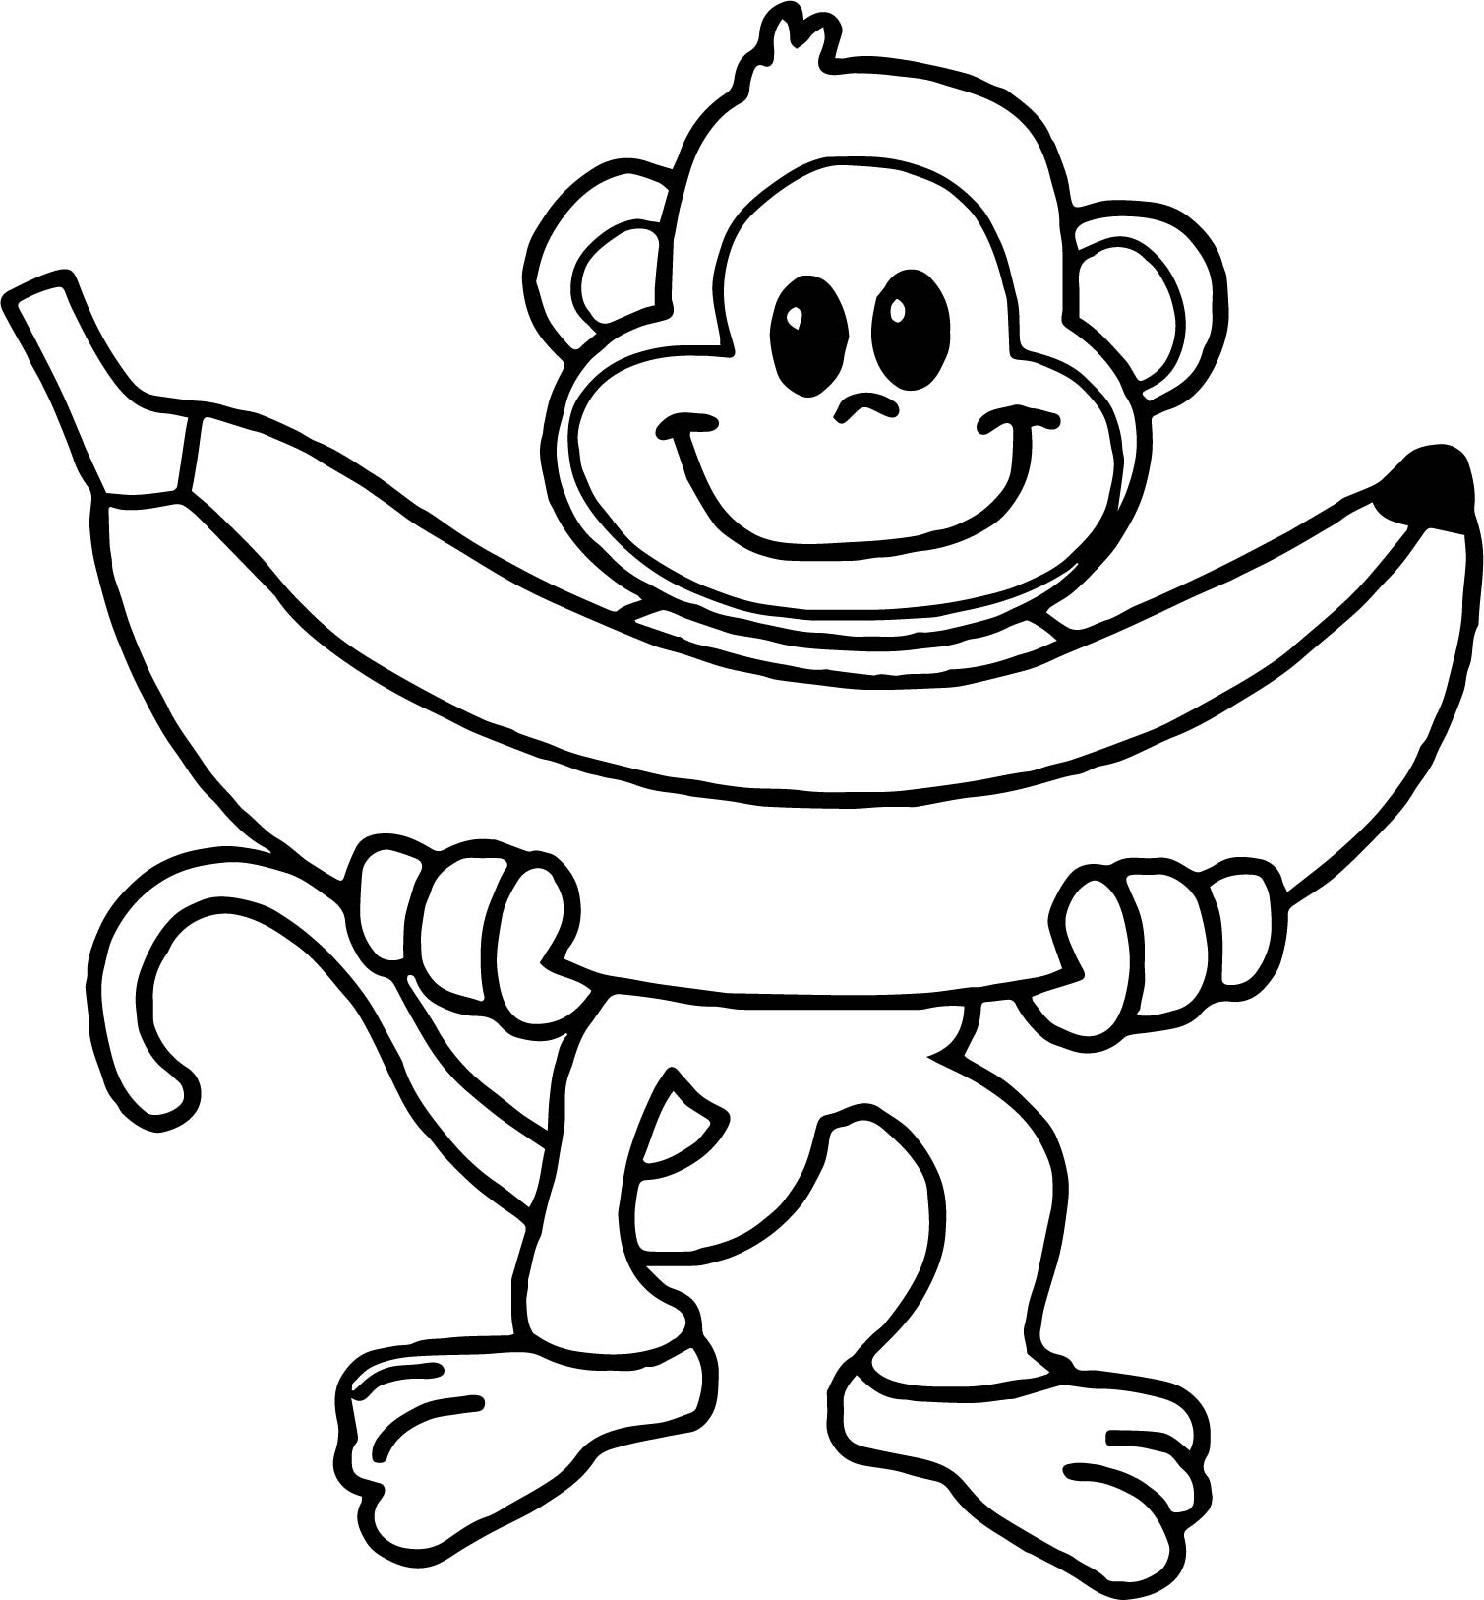 colouring pictures of monkeys get this baby monkey coloring pages 56210 colouring of monkeys pictures